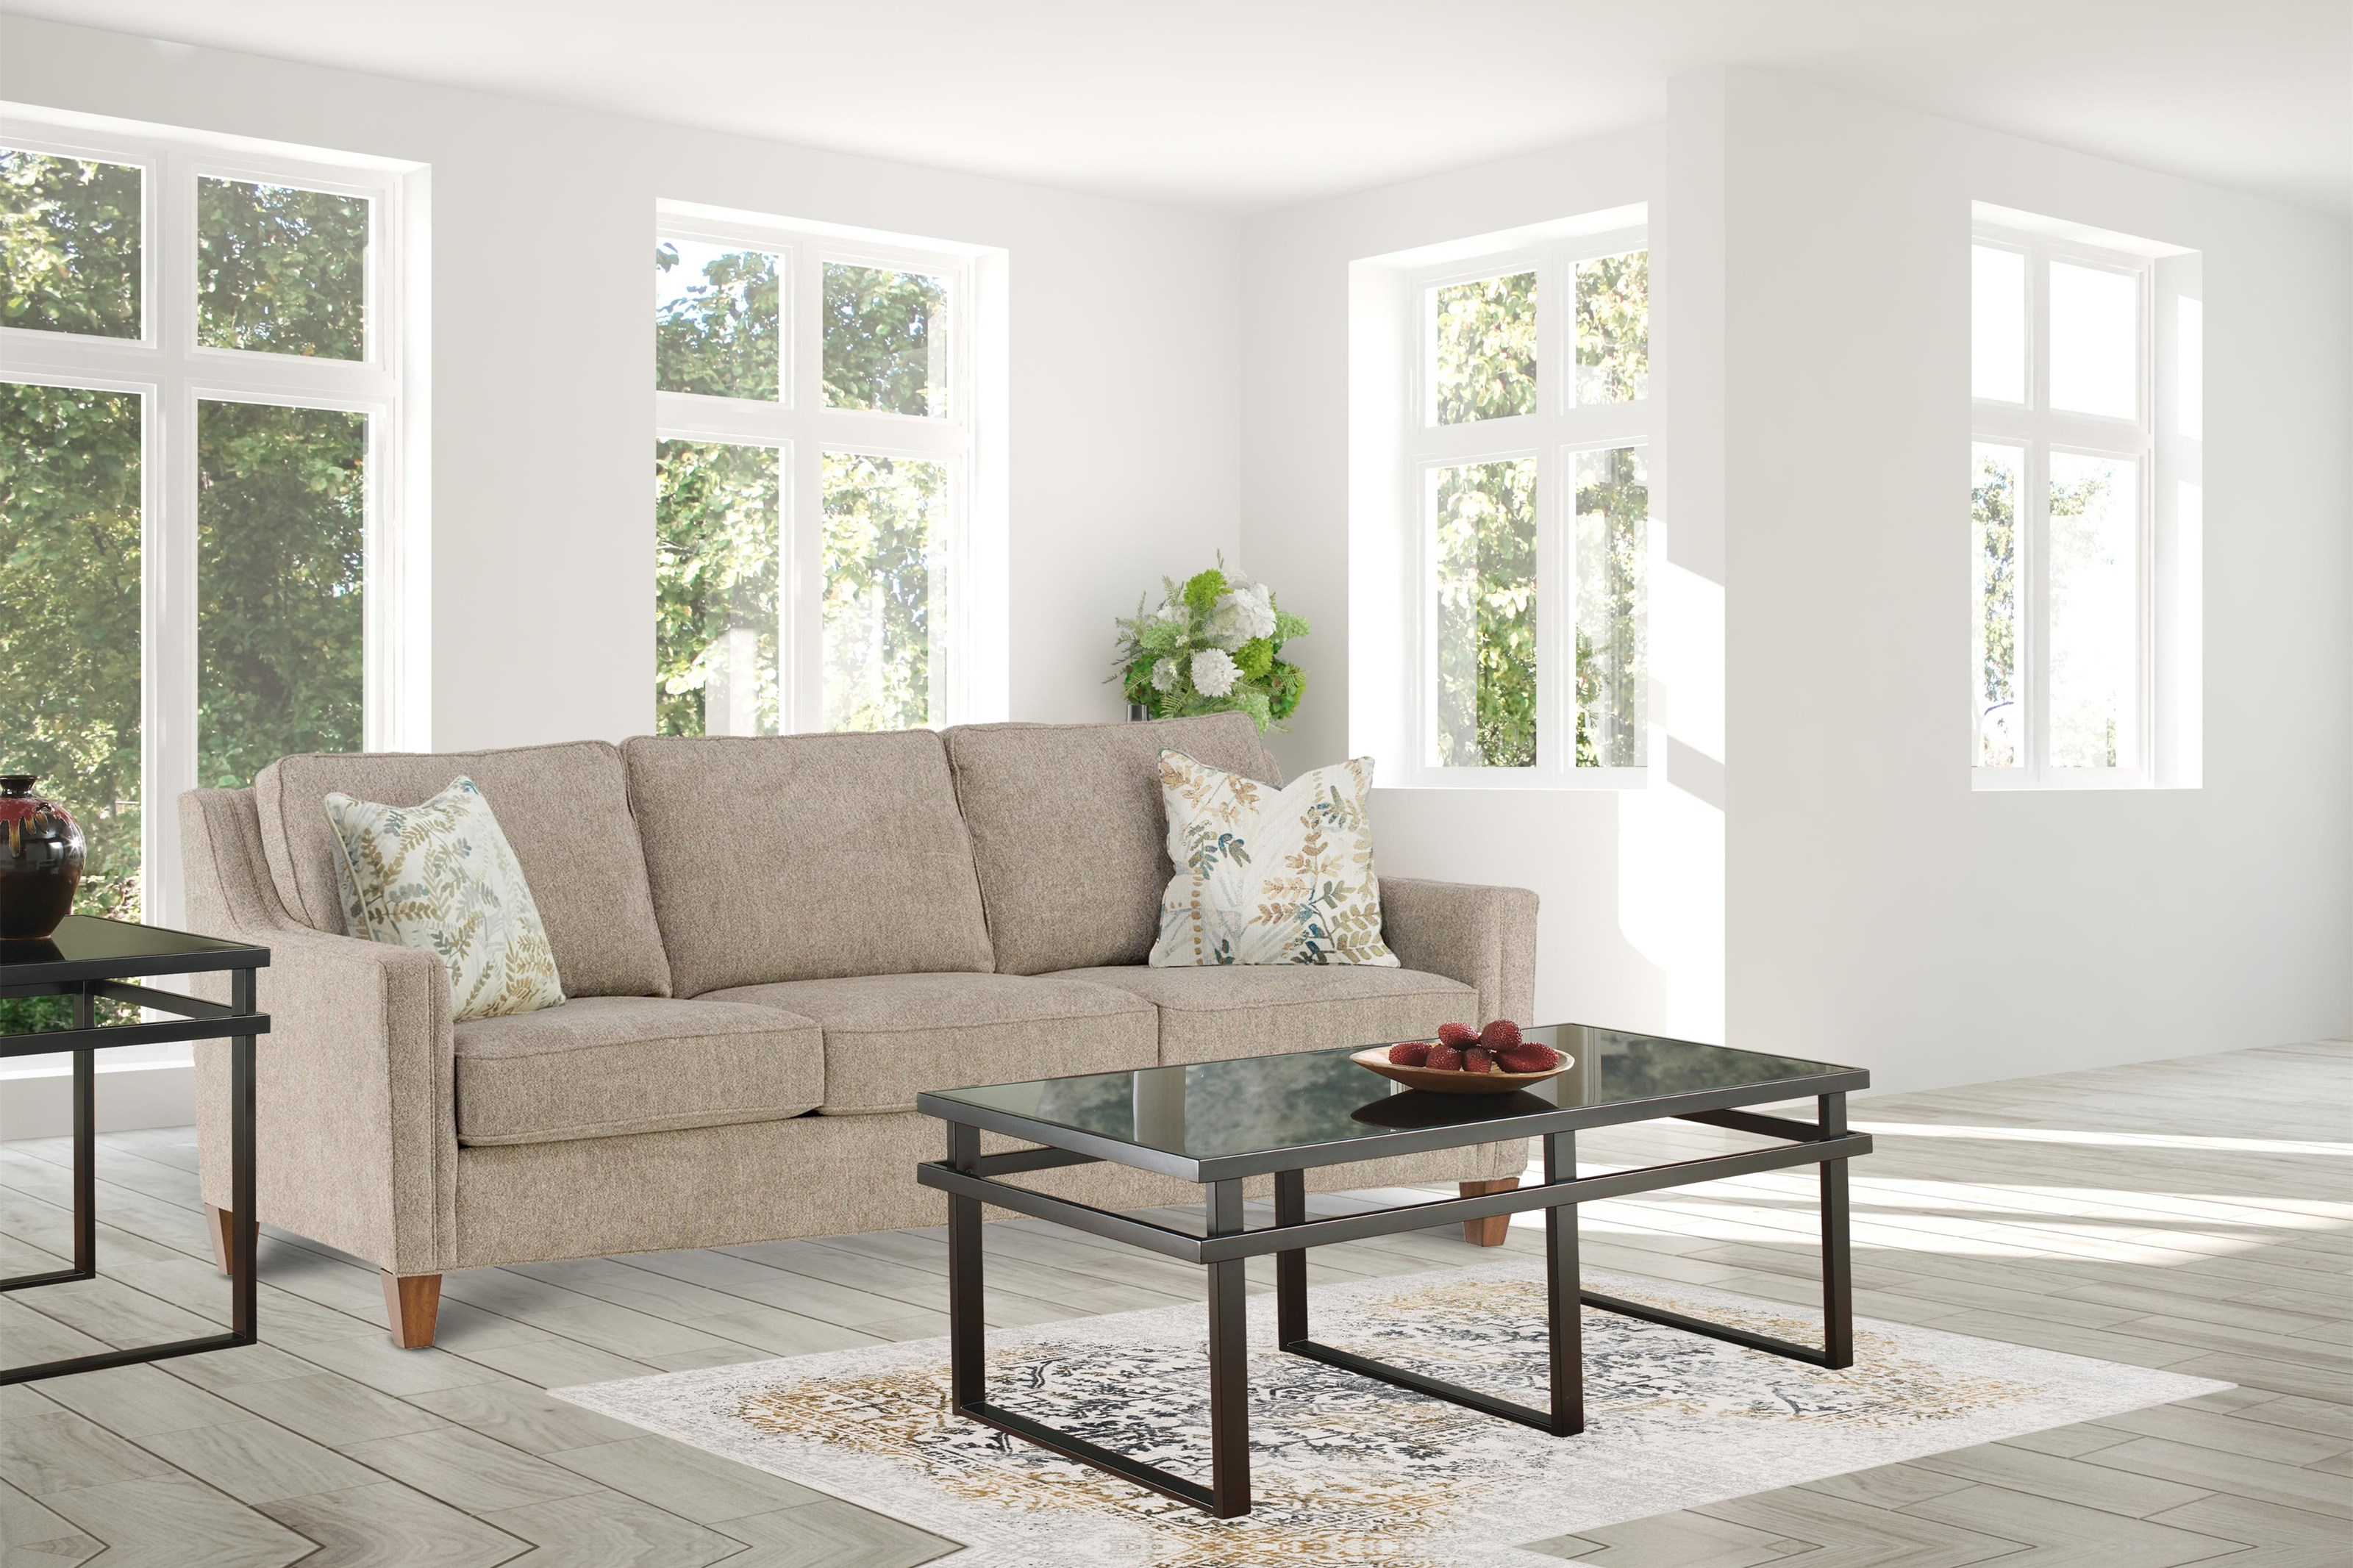 Florian Florian Sofa by Flexsteel Wynwood Collection at Morris Home